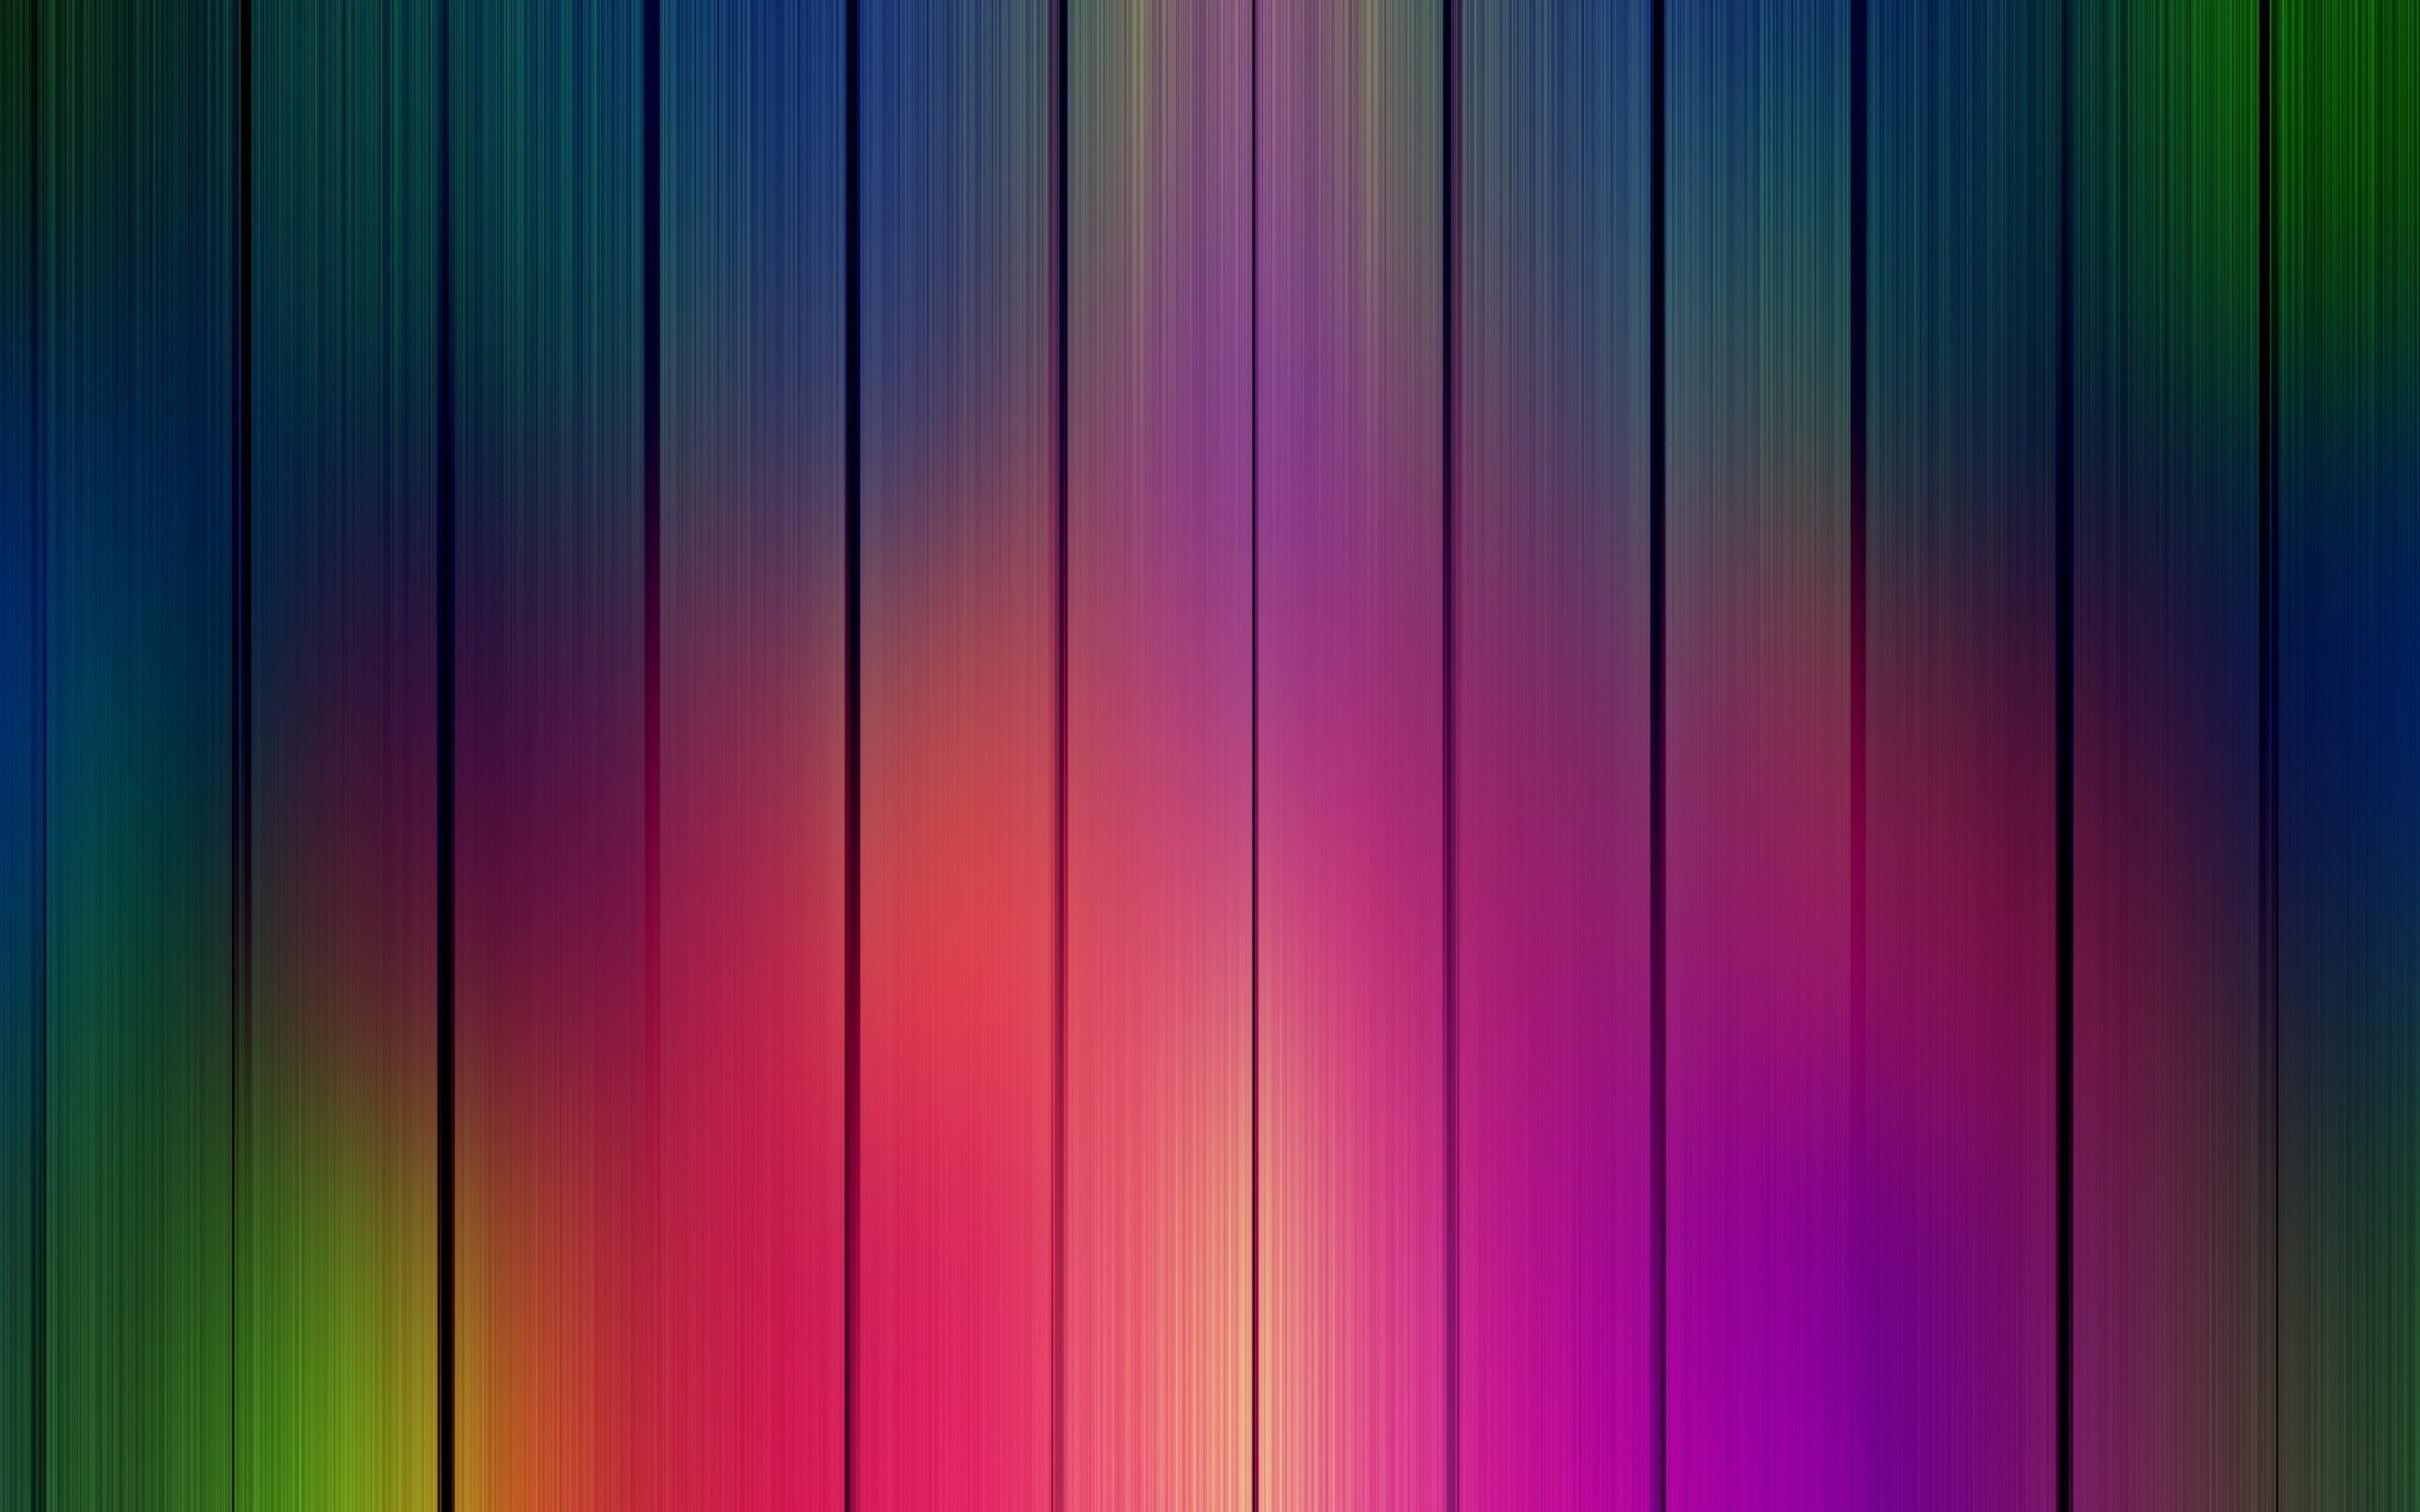 abstract-colorful-lines-4k-vj.jpg